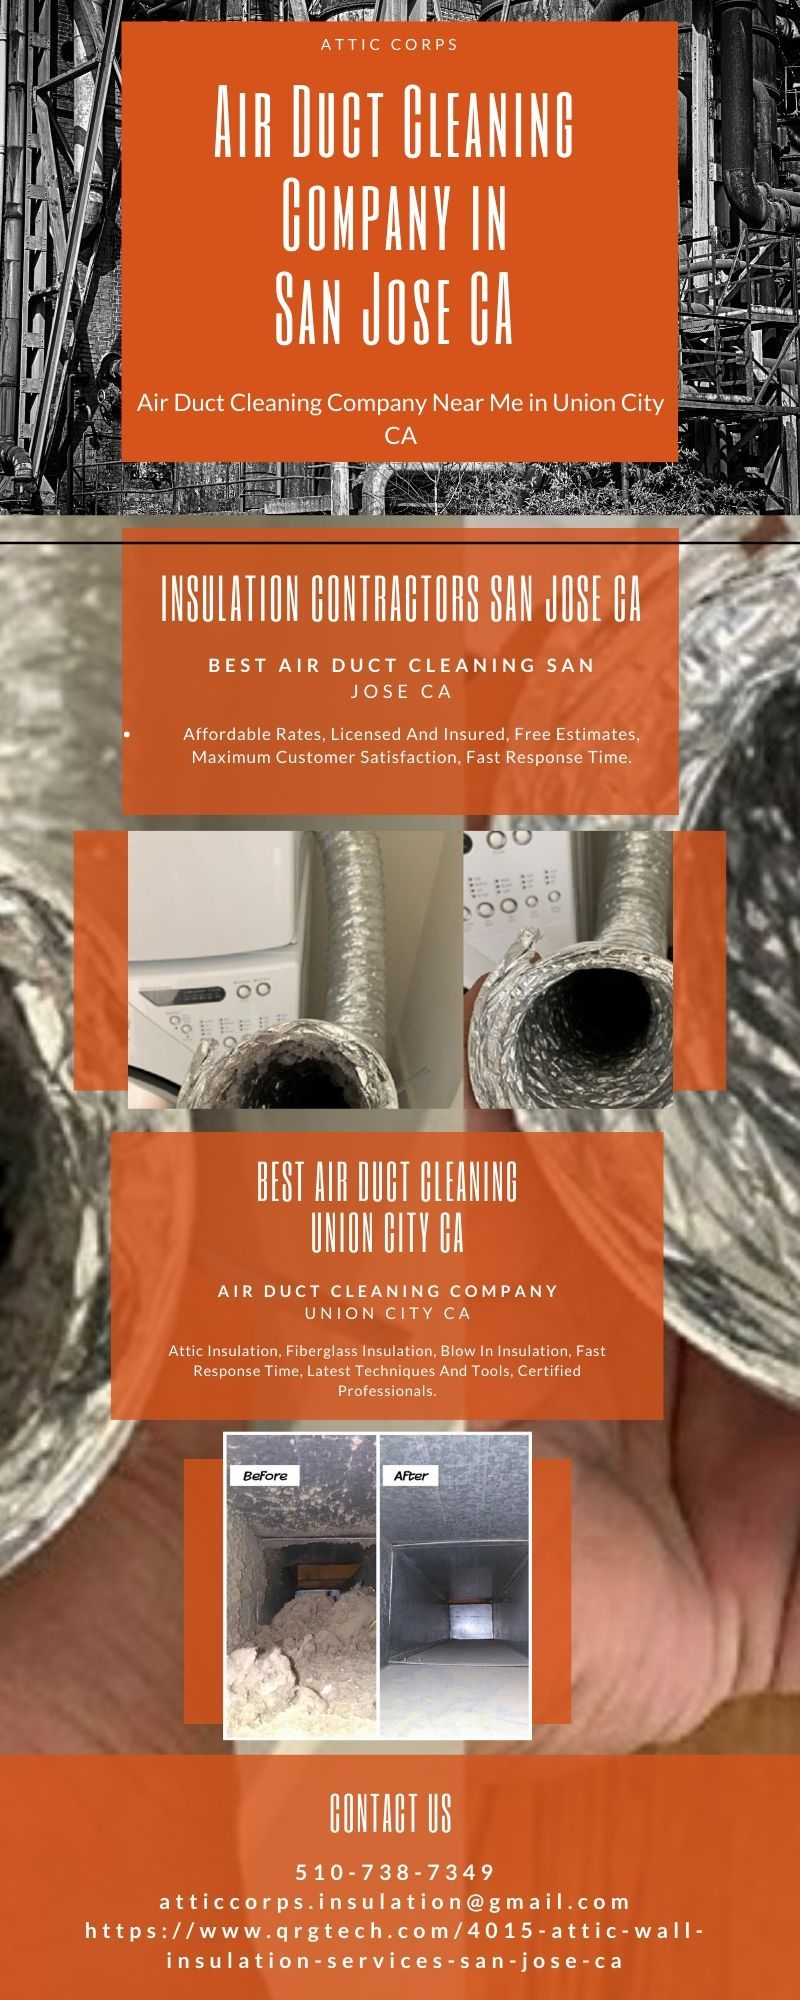 Air Duct Cleaning Price San Jose CA, Insulation San Jose